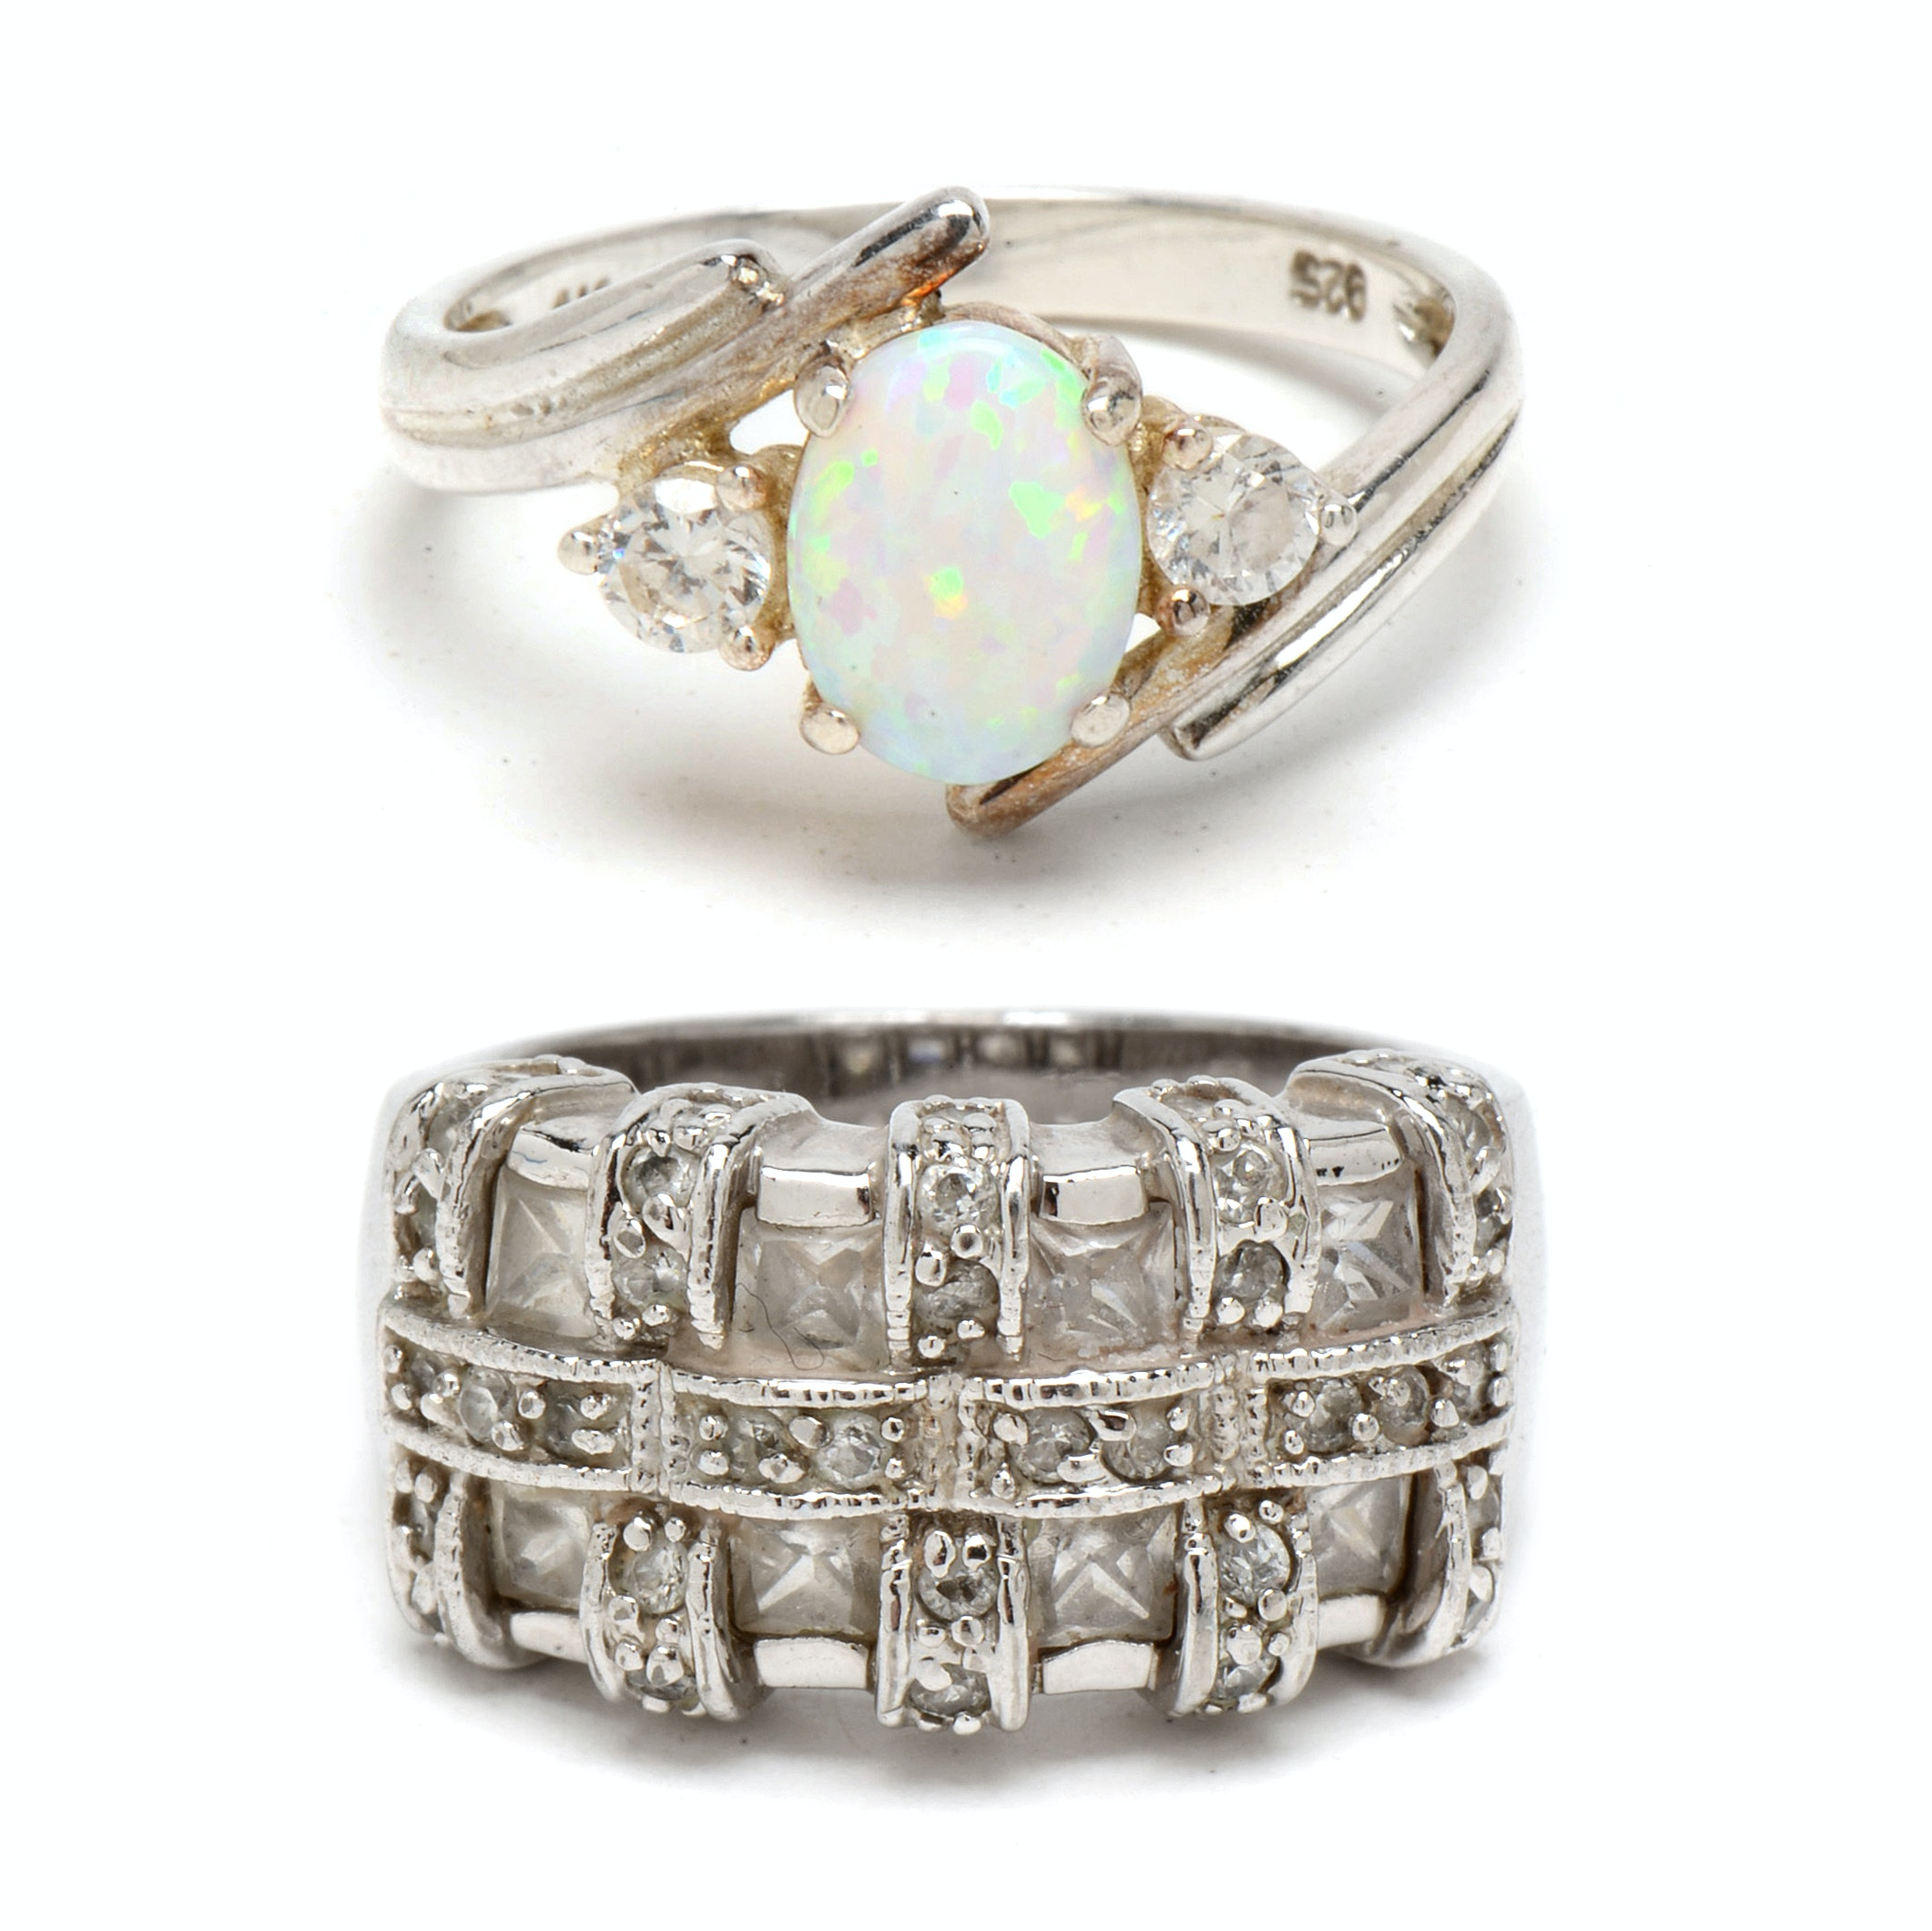 Pairing of Sterling Silver Rings with Synthetic Opals and CZs